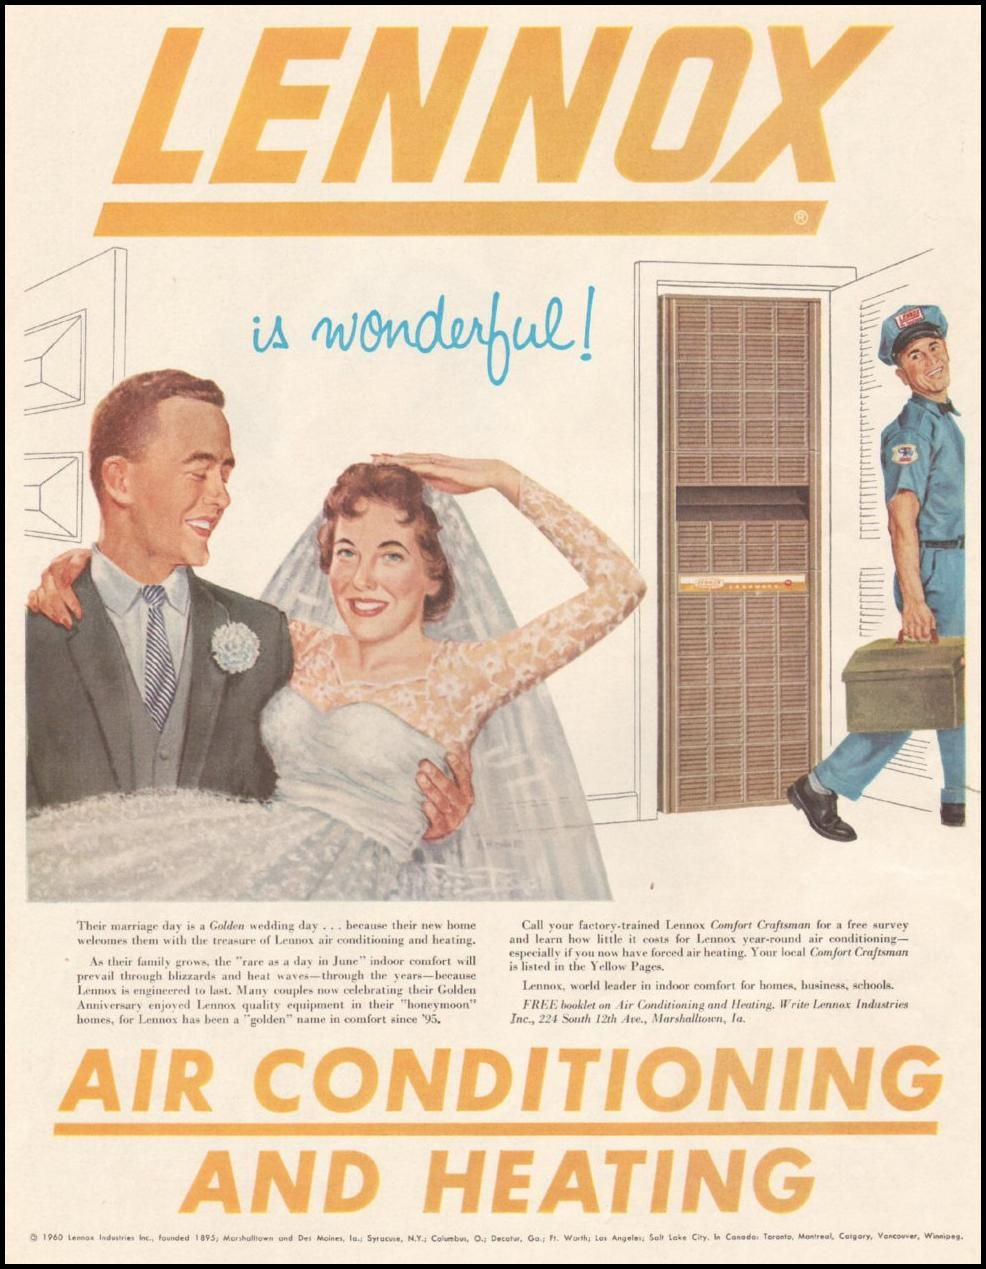 Lennox Air Conditioning And Heating Saturday Evening Post 06 11